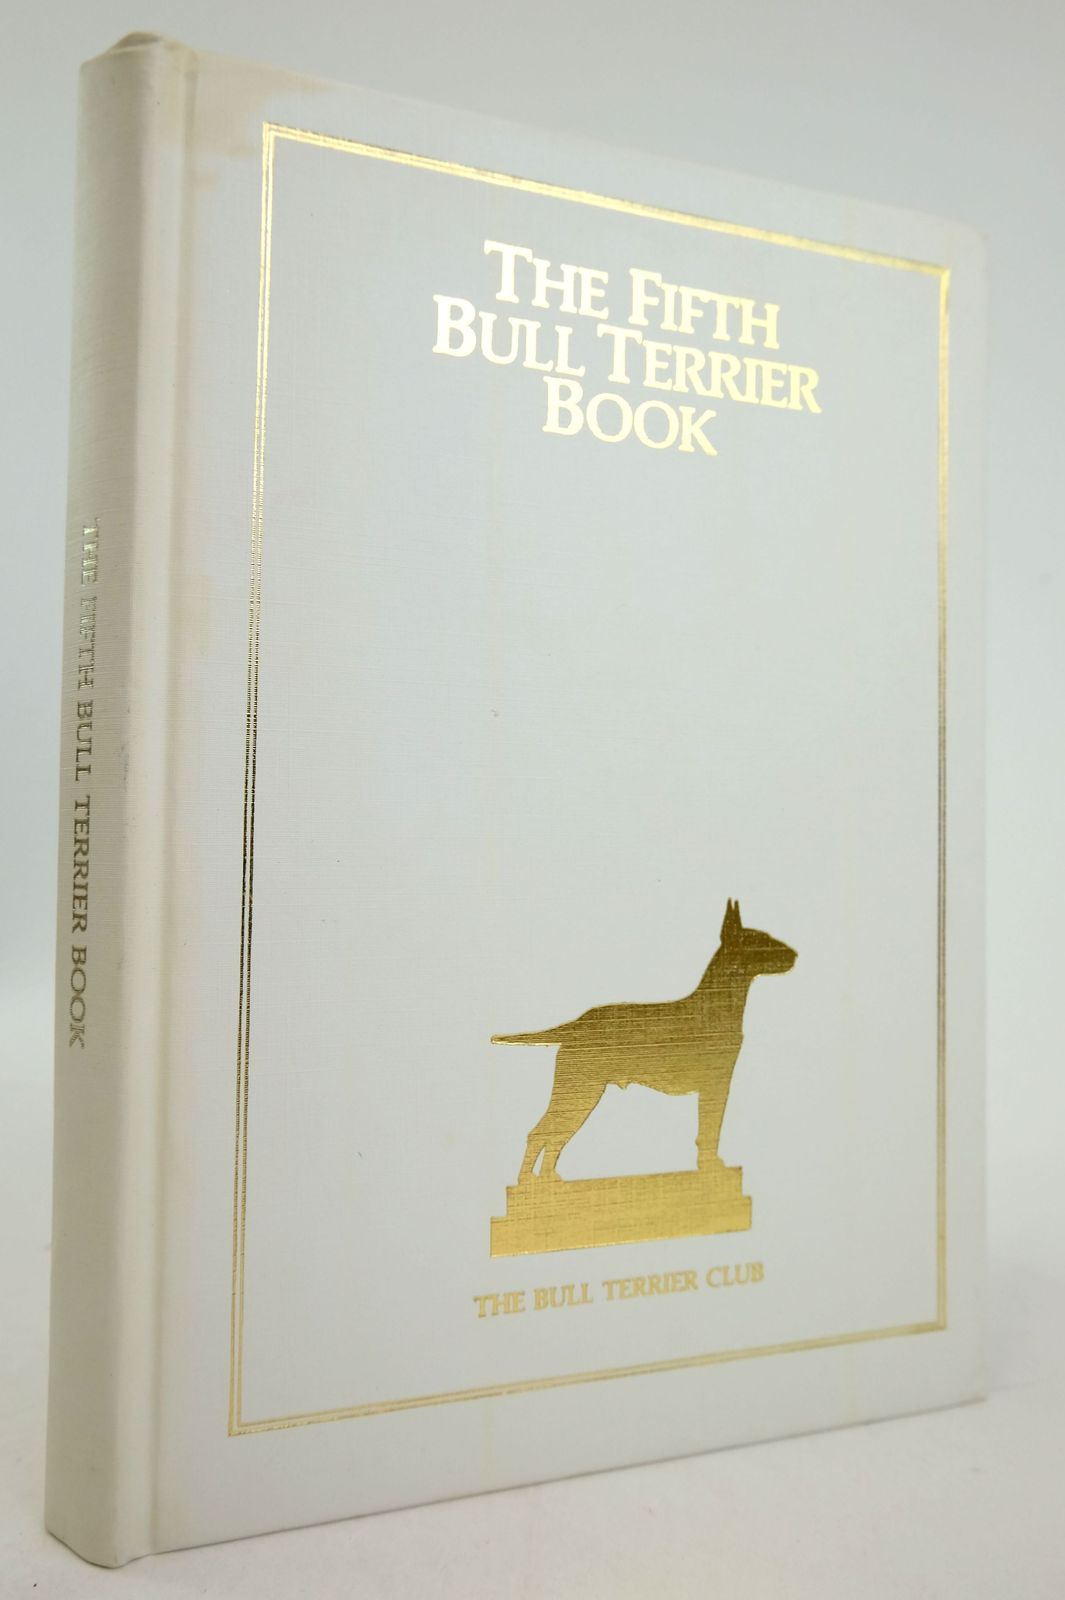 Photo of THE FIFTH BULL TERRIER BOOK written by Sweeten, Margaret O. published by The Bull Terrier Club (STOCK CODE: 1819692)  for sale by Stella & Rose's Books